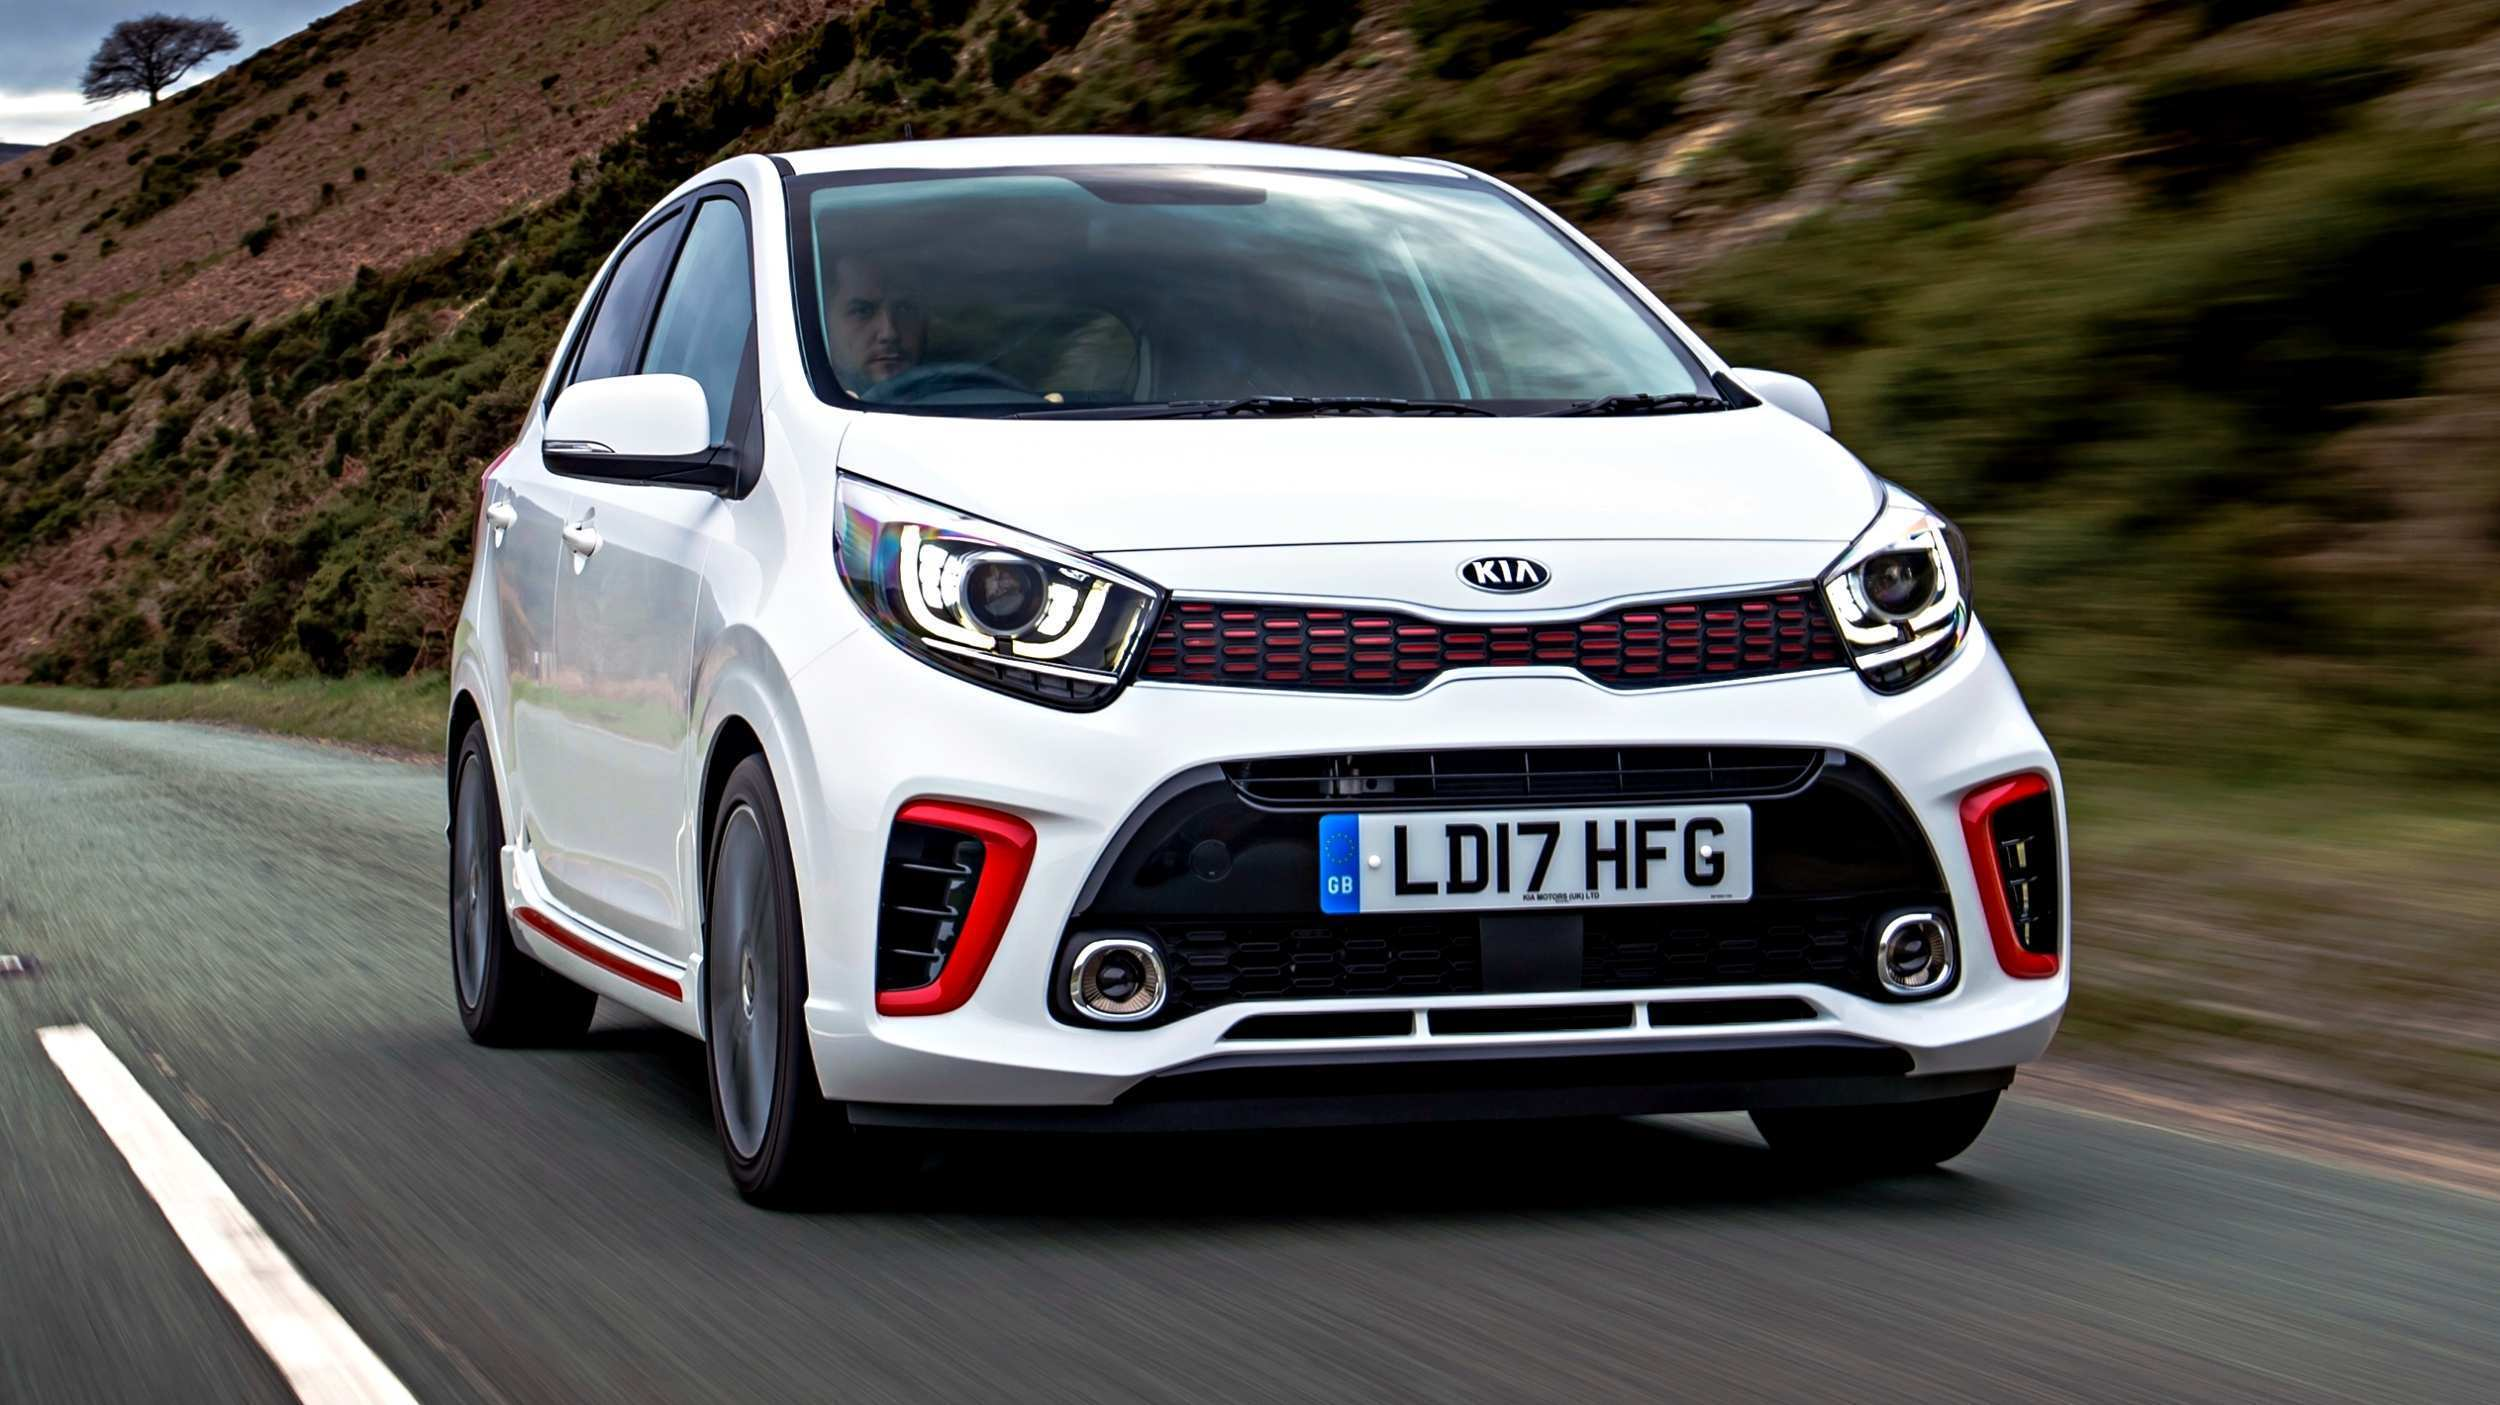 30 Gallery of Kia Picanto Gt Line 2020 Speed Test by Kia Picanto Gt Line 2020